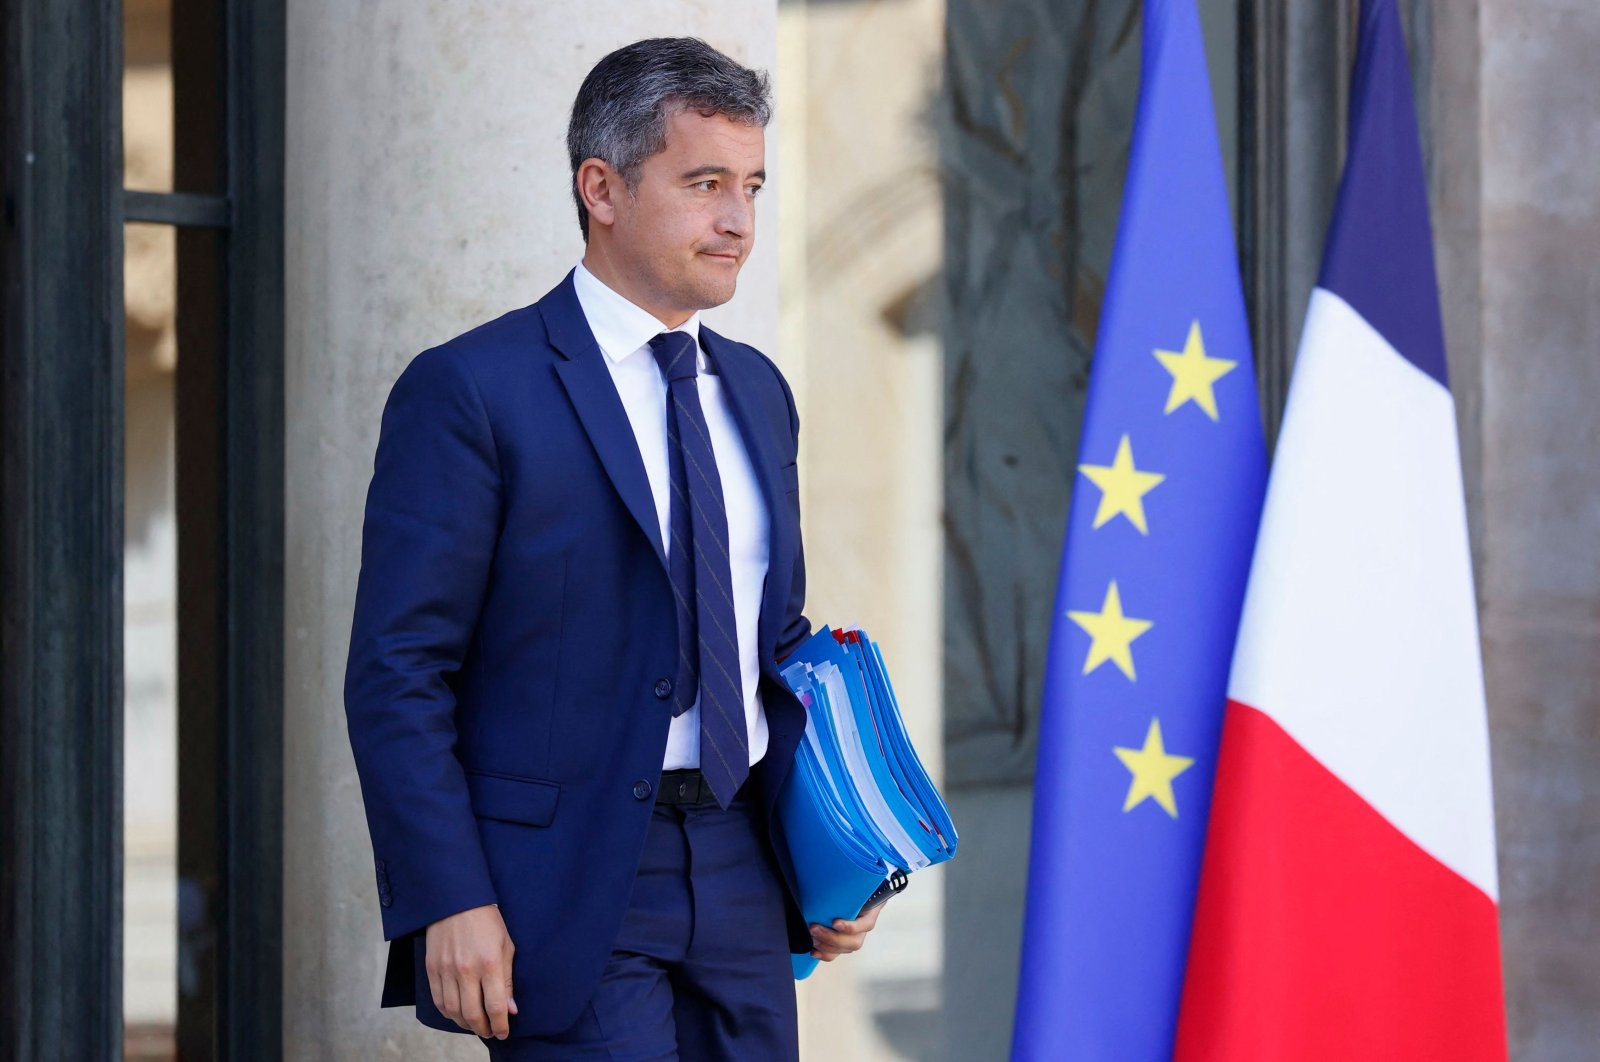 French Interior Minister Gerald Darmanin reacts as he leaves the French Presidential Palace after a weekly Cabinet meeting, Paris, France, Sept. 22, 2021. (AFP Photo)